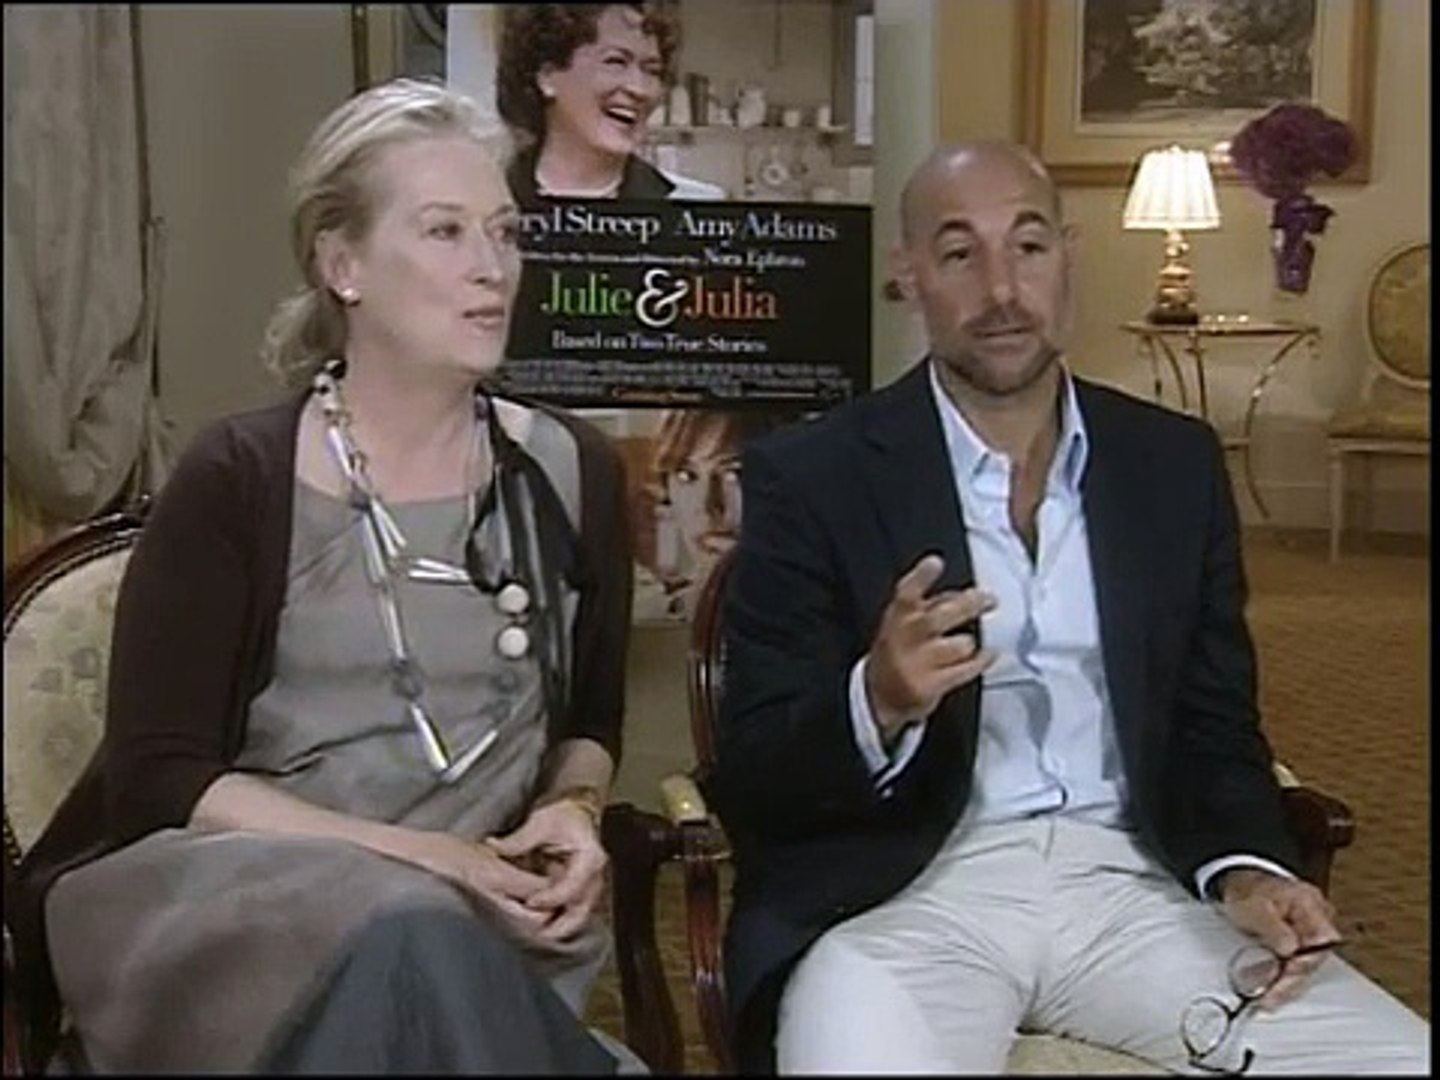 Meryl Streep & Stanley Tucci - Telecinco Interview